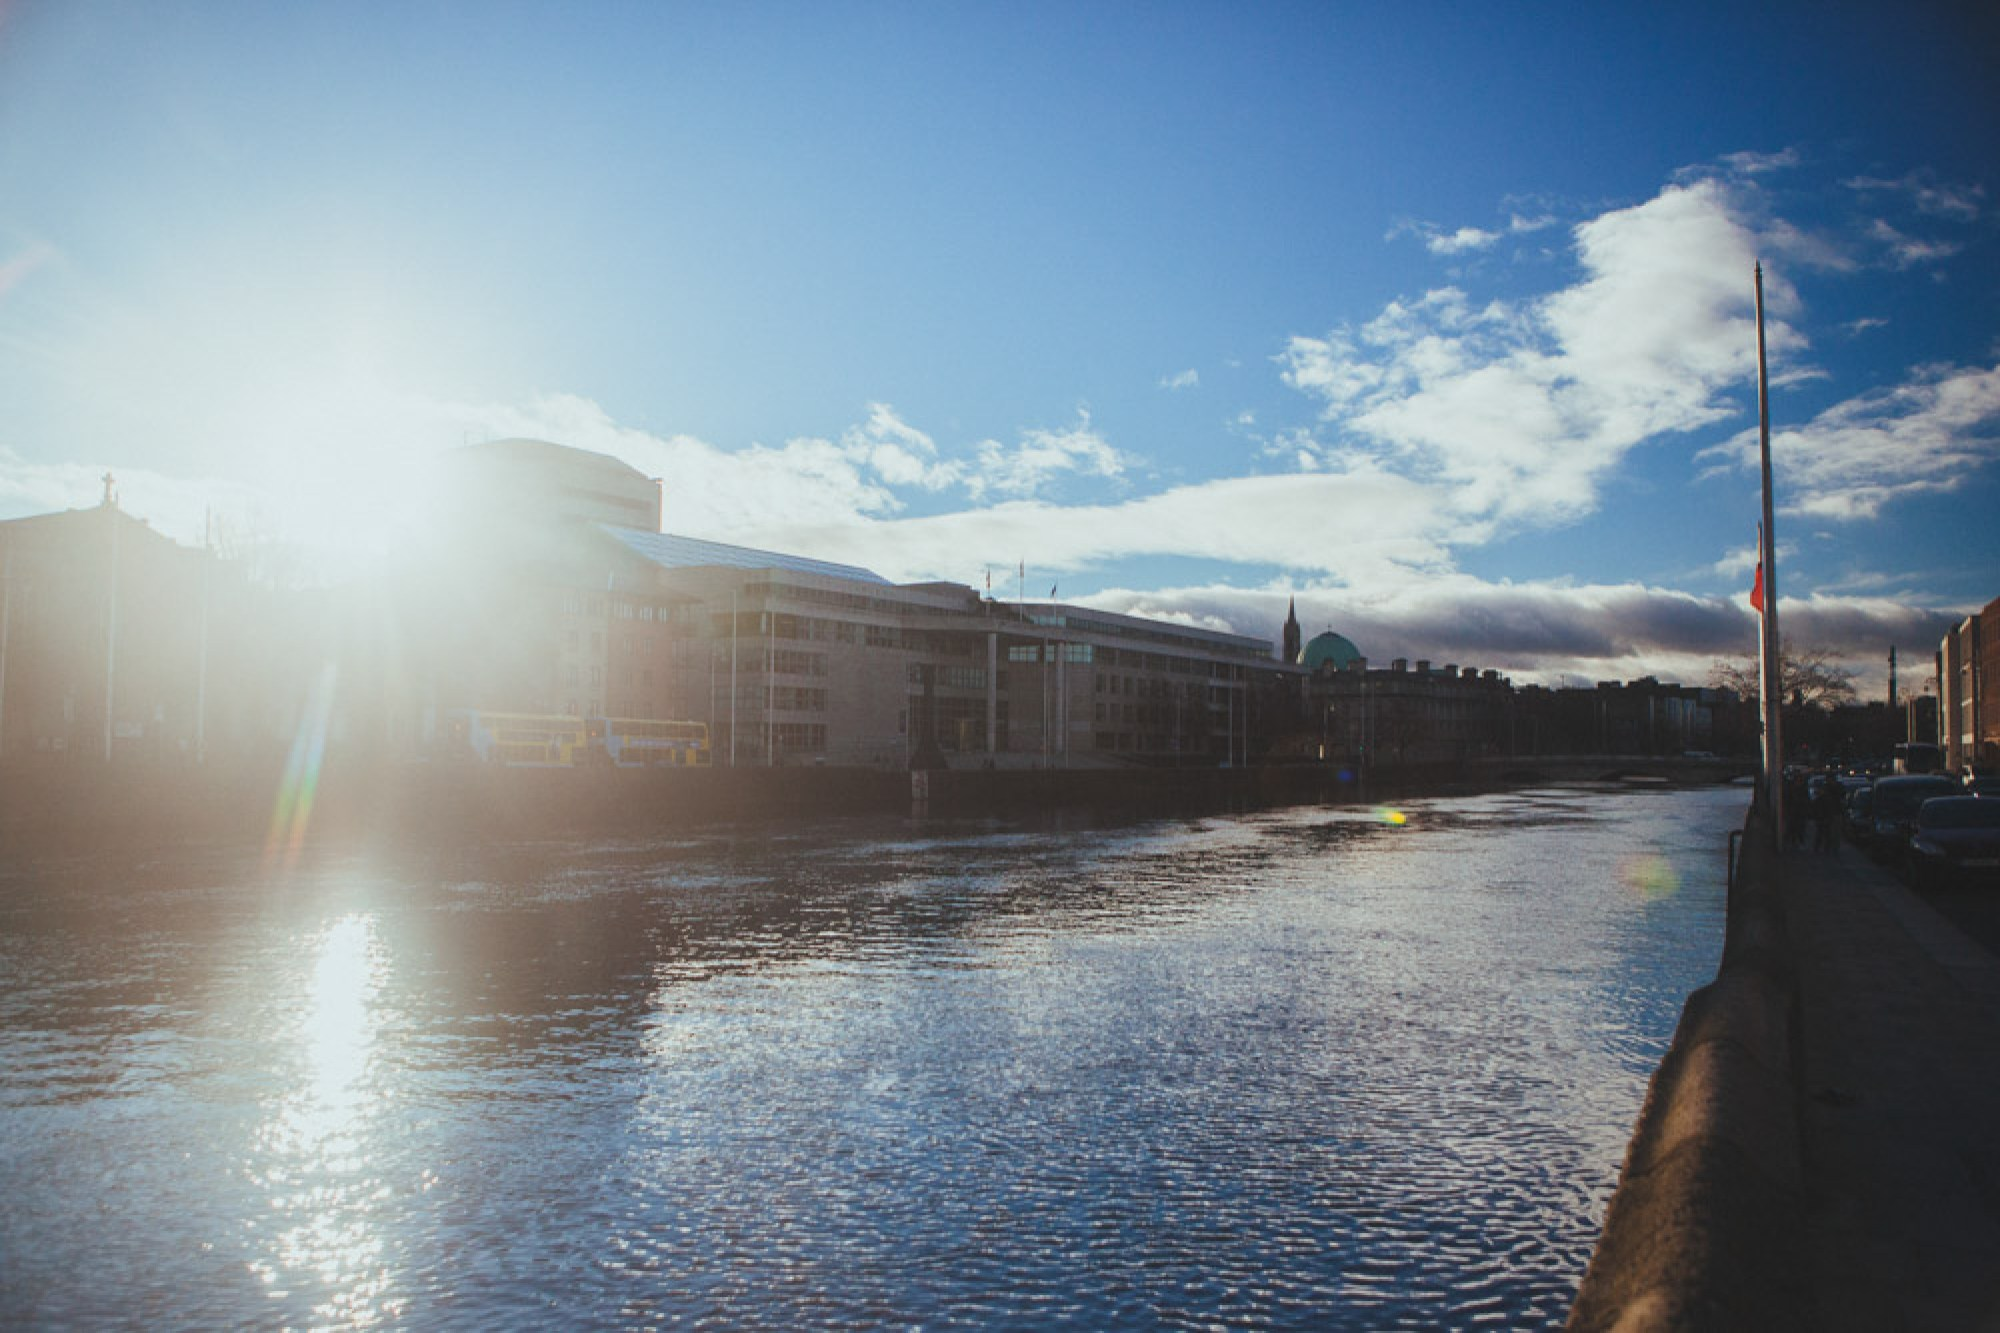 48 Hours in Dublin Travel Guide